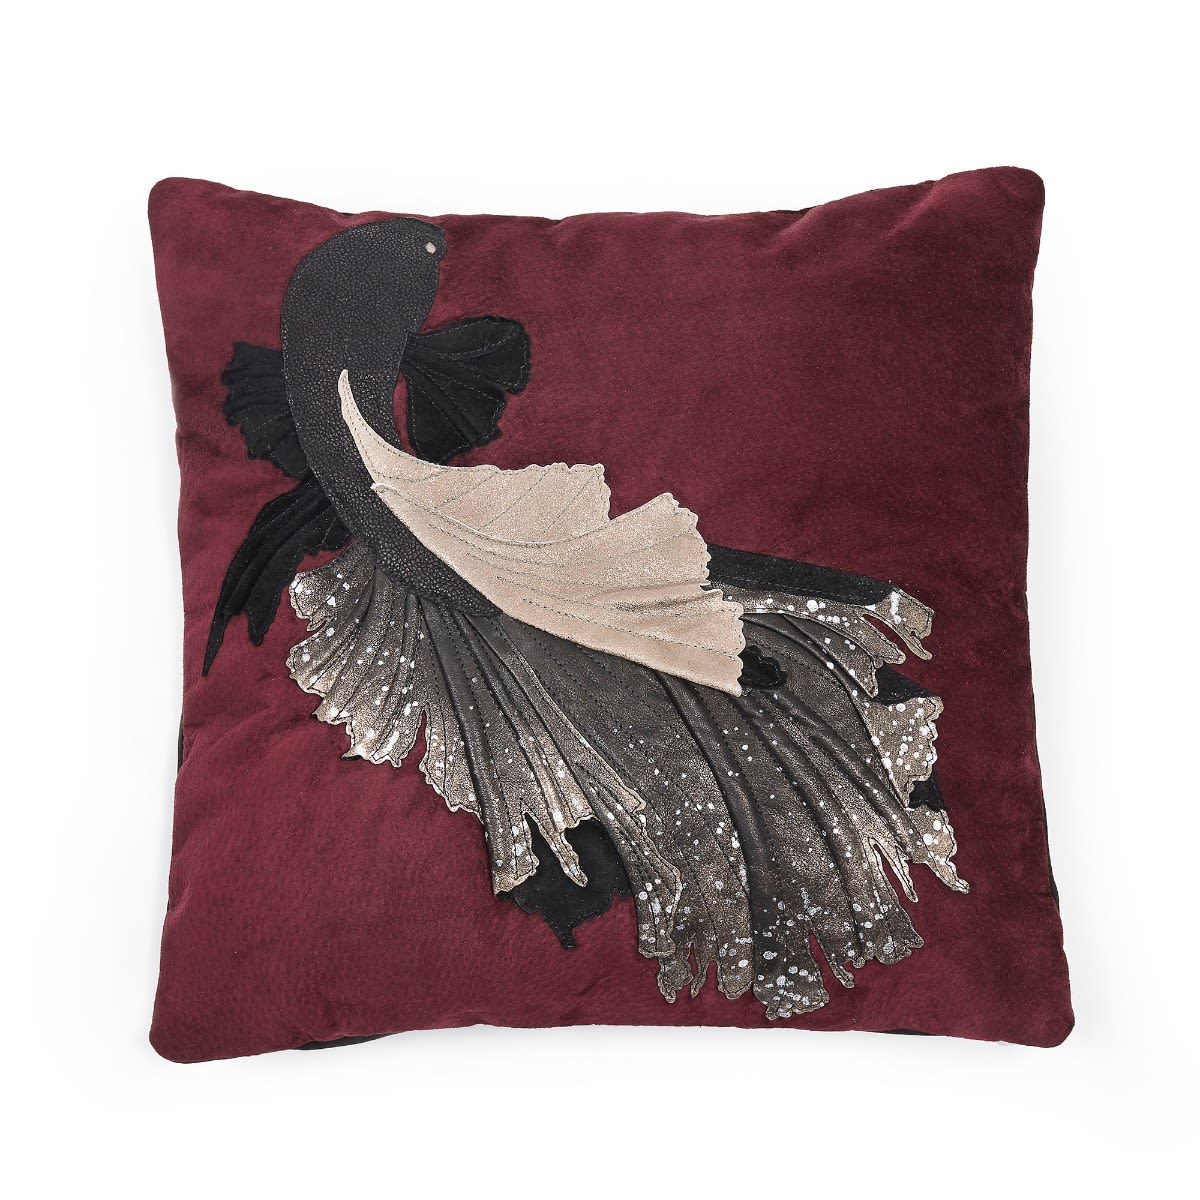 RED BETTA FISH Black Cushion Cover Feather Fibre Filled